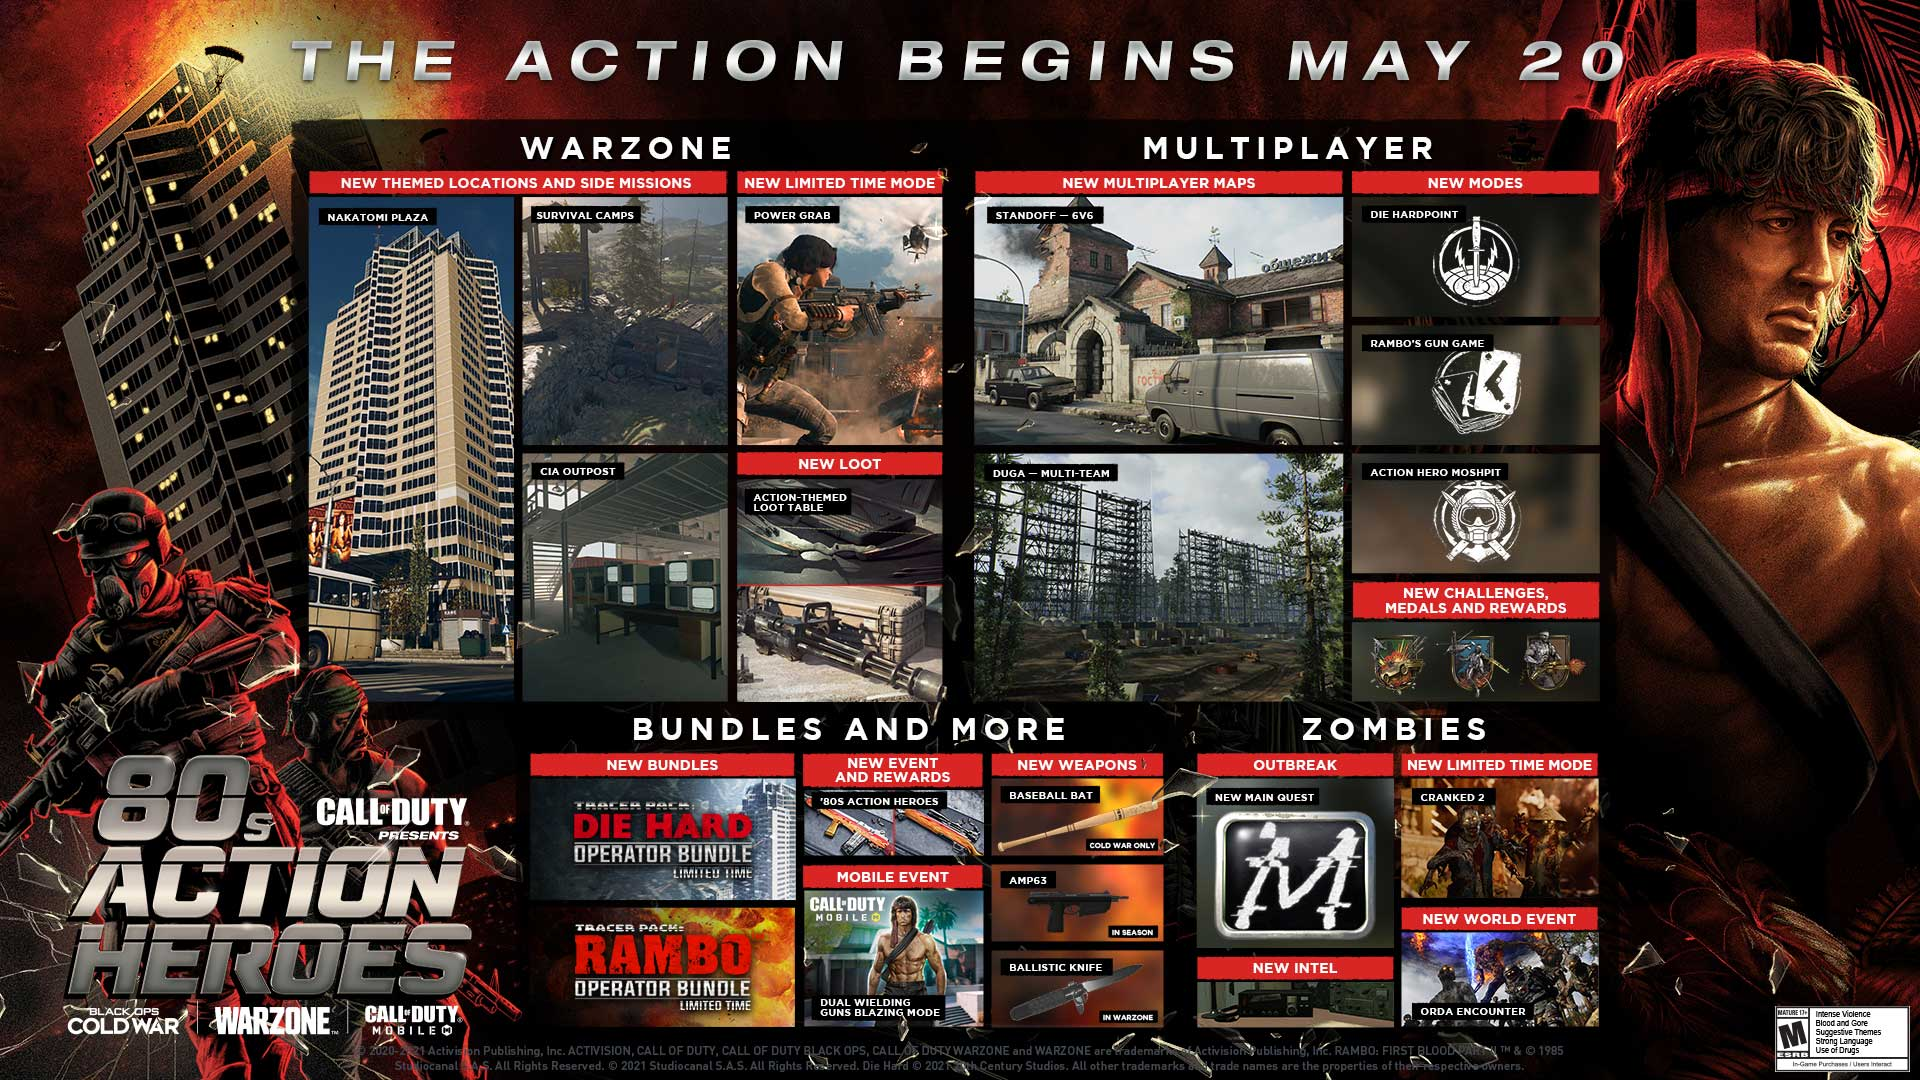 80s Action Heroes Rambo And John Mcclane Make Their Explosive Debut Across Call Of Duty